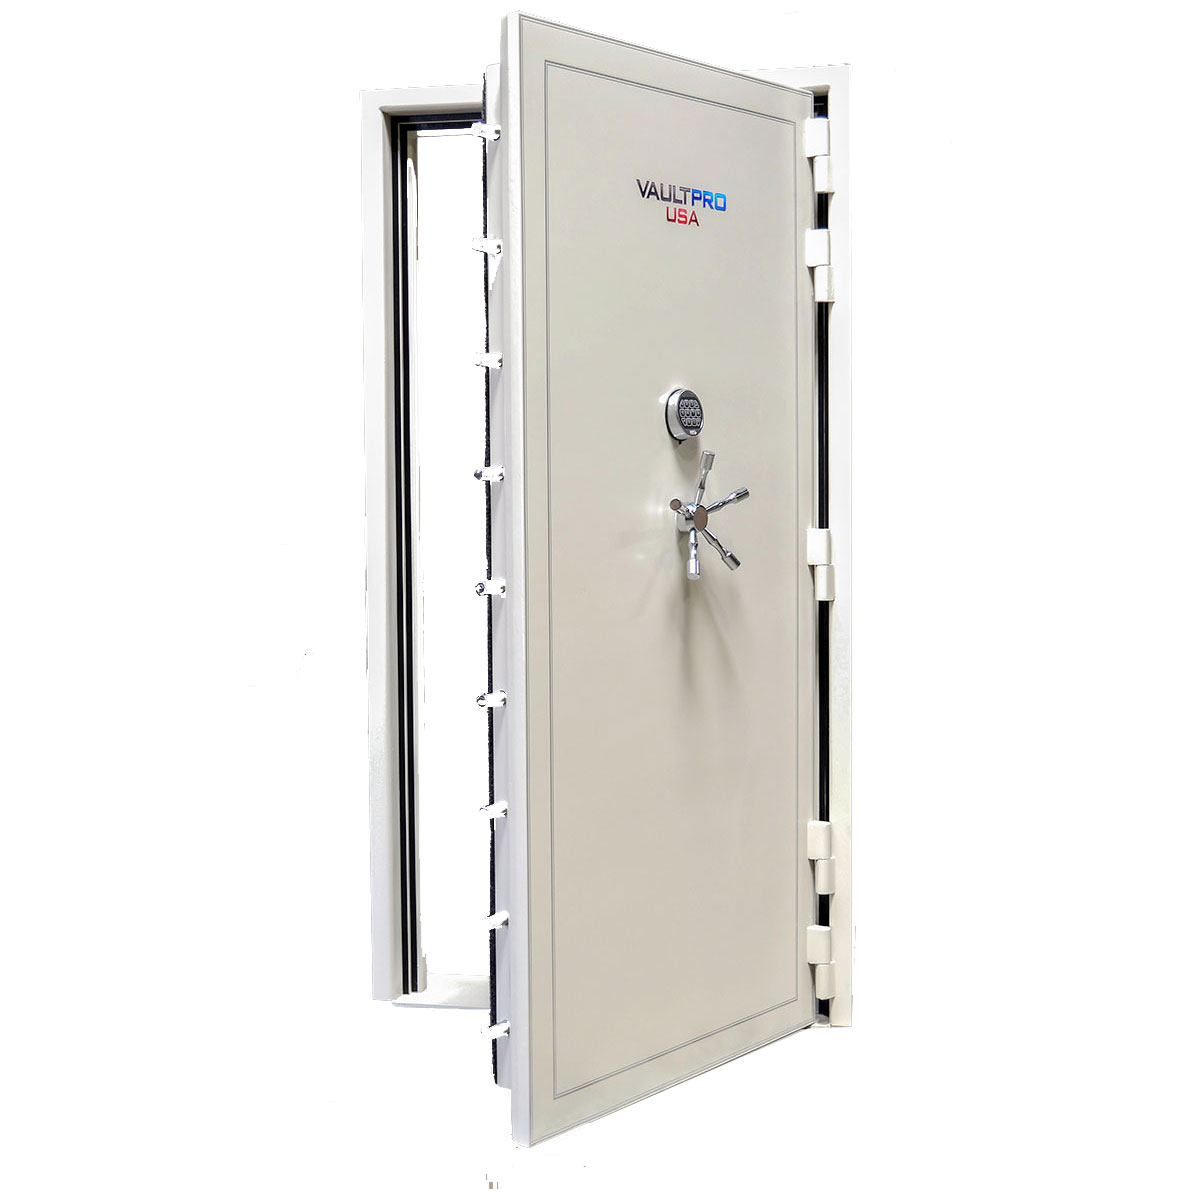 Vault pro titan series vault door vault pro titan series for Door pros